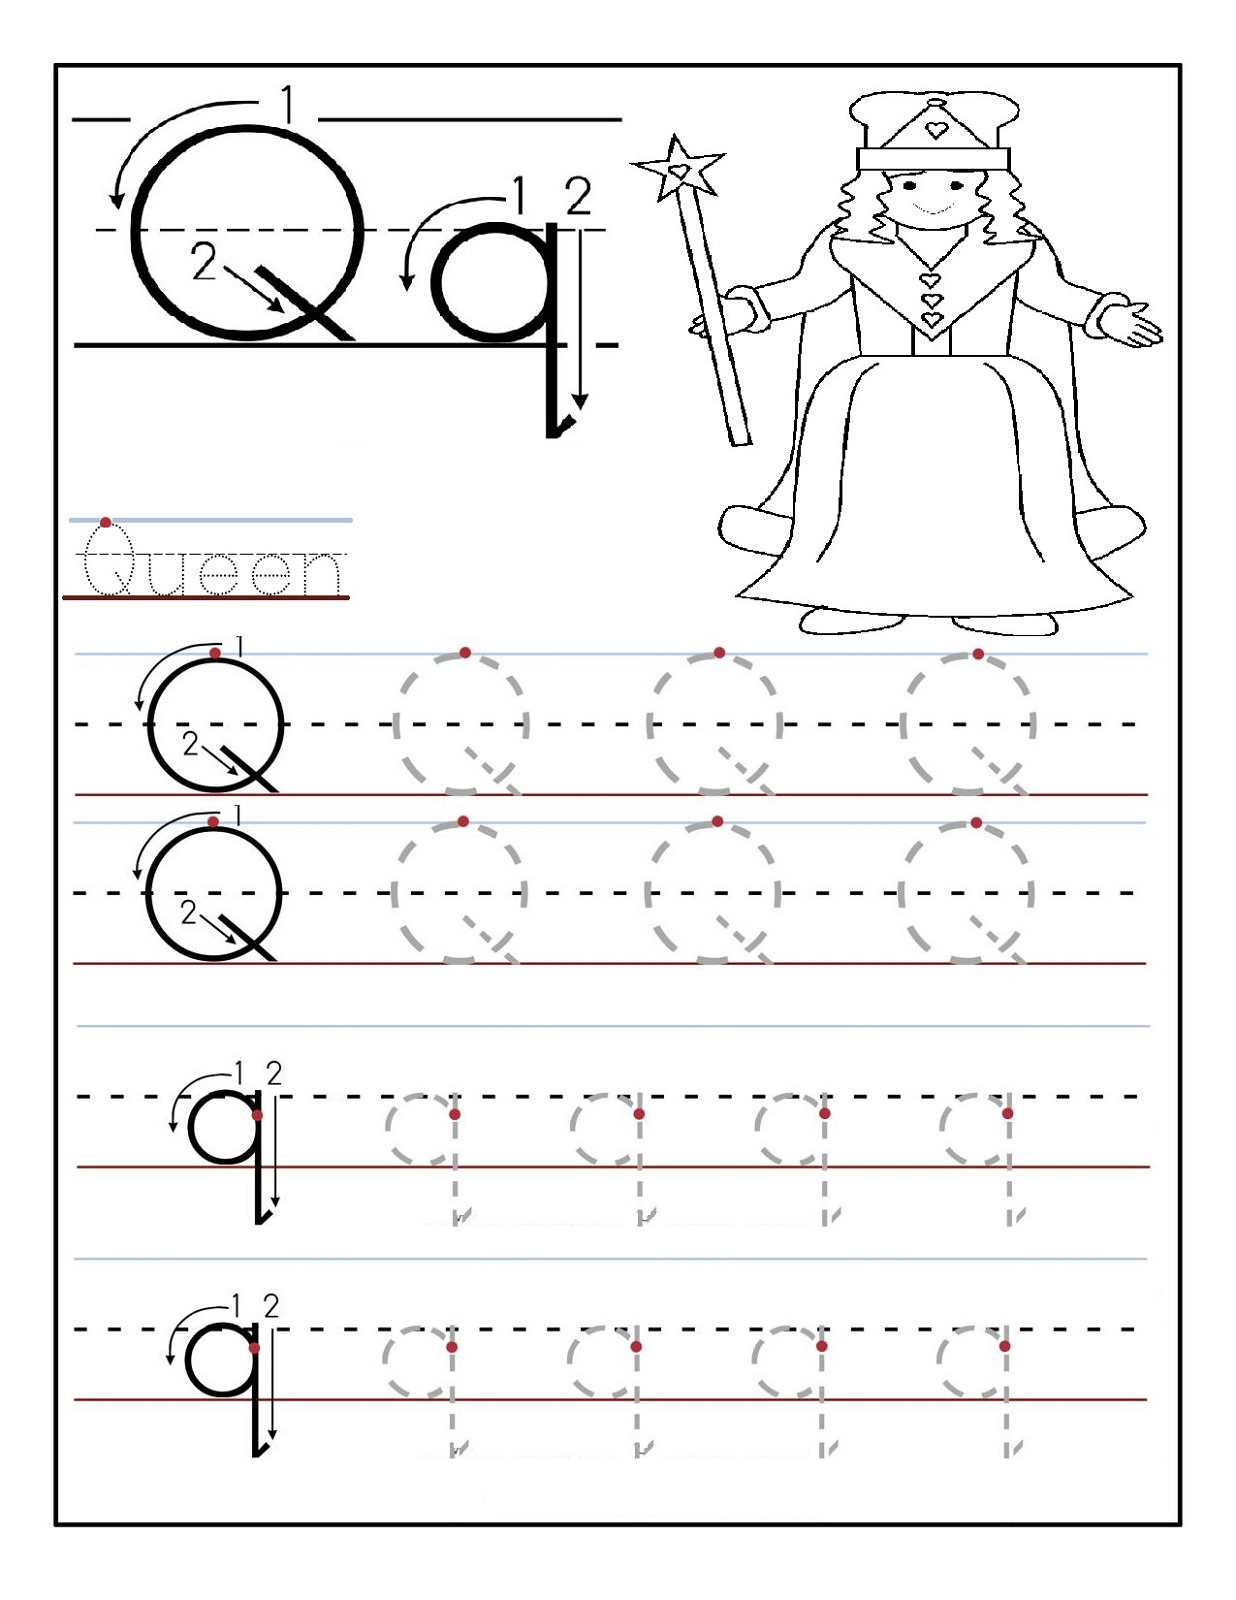 pre-alphabet-worksheets-queen Queen Worksheet For Pre on prefixes re, writing shapes, printable letter, tracing shapes, grade printable, algebra fractions, printable matching,